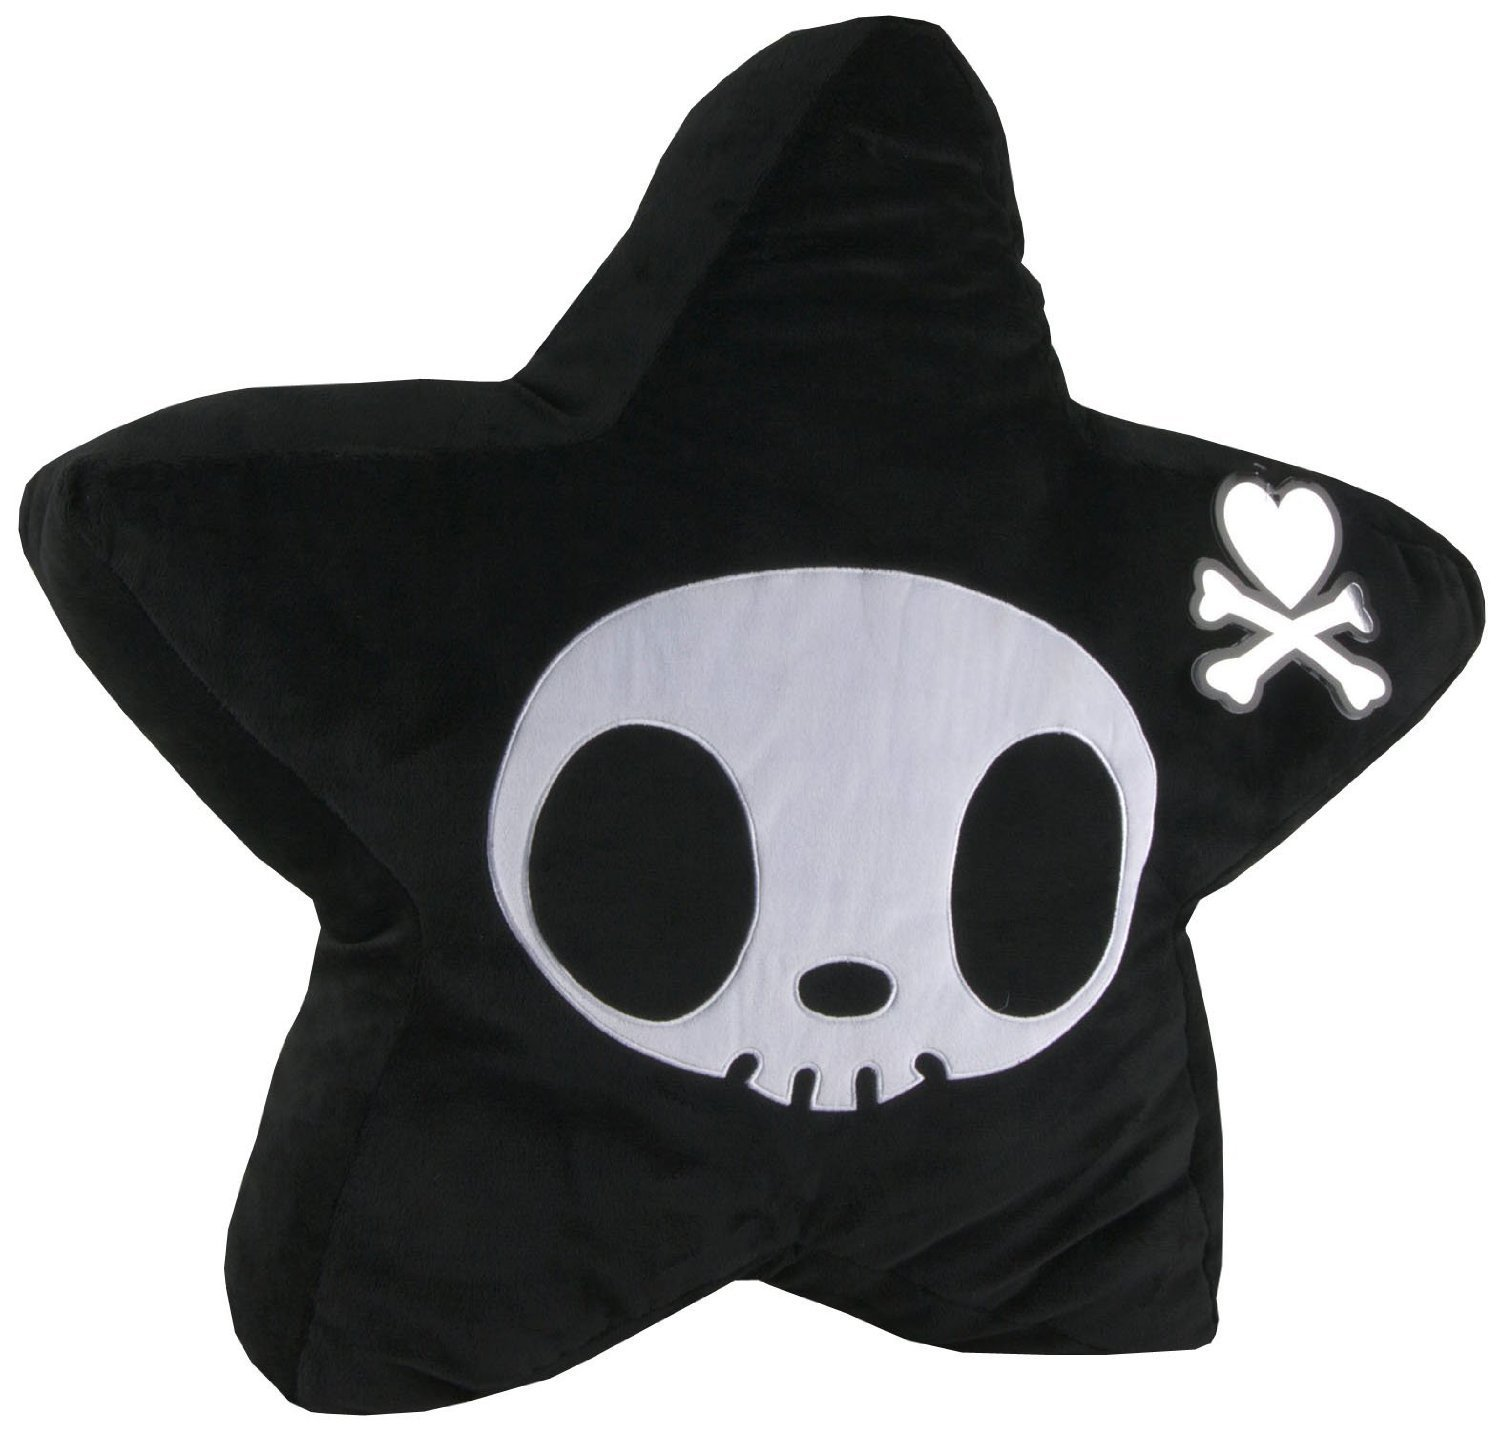 f32d09c6775 Get Quotations · Tokidoki Adios Star Pillow